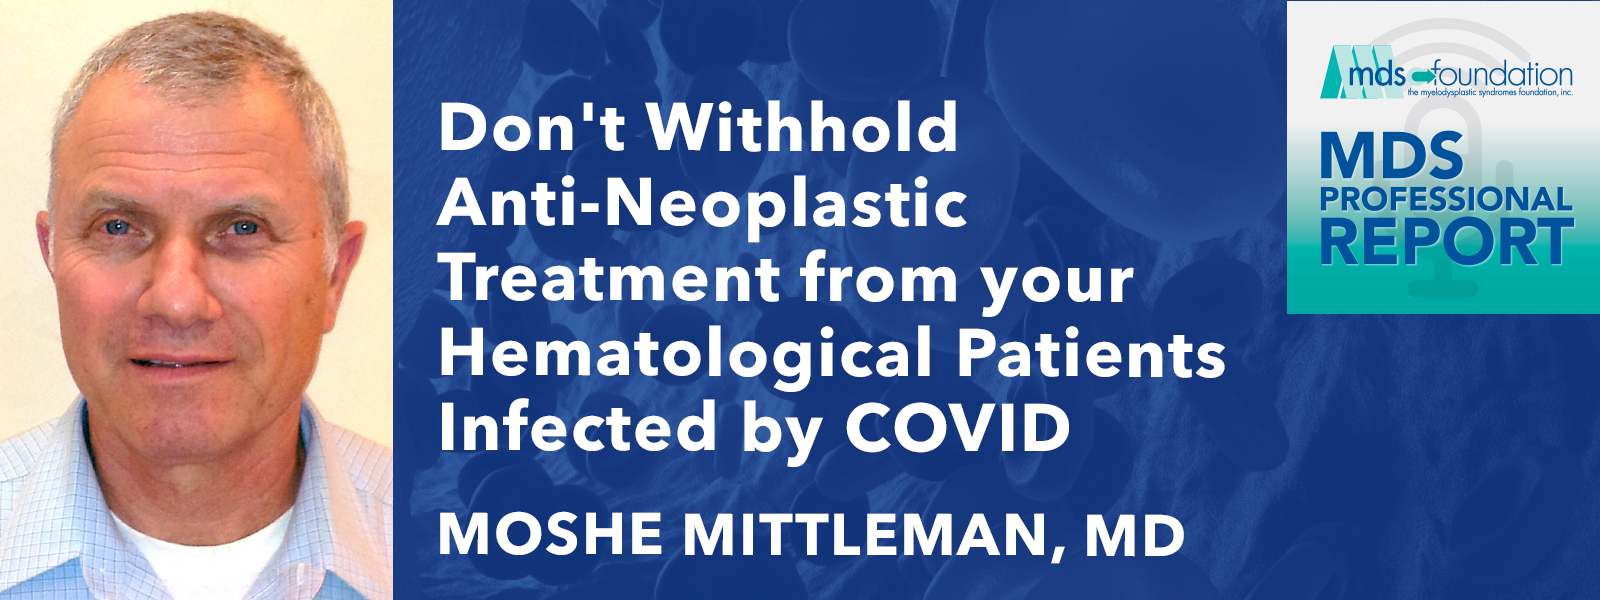 Don't Withhold Anti-Neoplastic Treatment from your Hematological Patients Infected by COVID